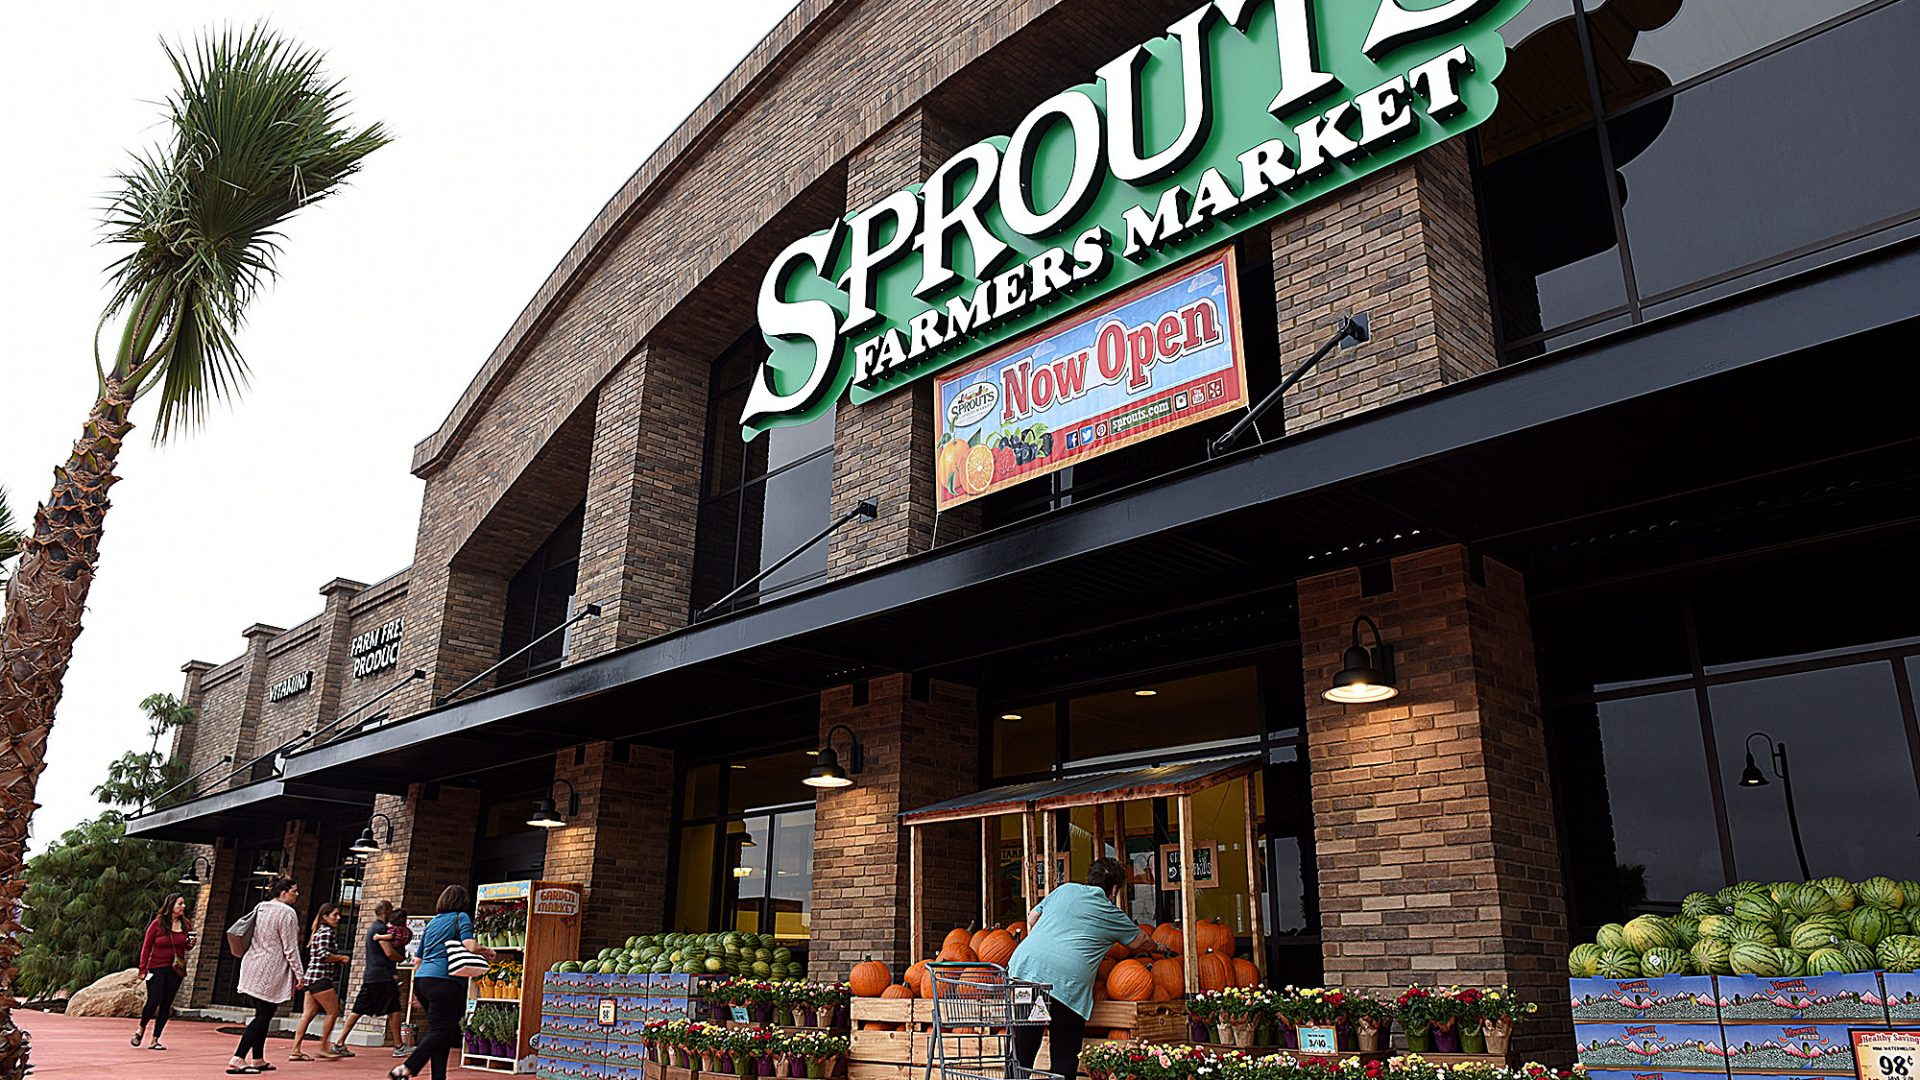 Sprouts Farmers Market celebrated their Redlands grand opening Wednesday, September 20, 2017. The 30,000-square-foot store, is the anchor tenant in Packing House District at Eureka Street and the 10 Freeway. PetSmart, Luna Grill and Chronic Tacos are among the other anticipated tenants. (Staff photo by Rick Sforza, Redlands Daily Facts/SCNG)